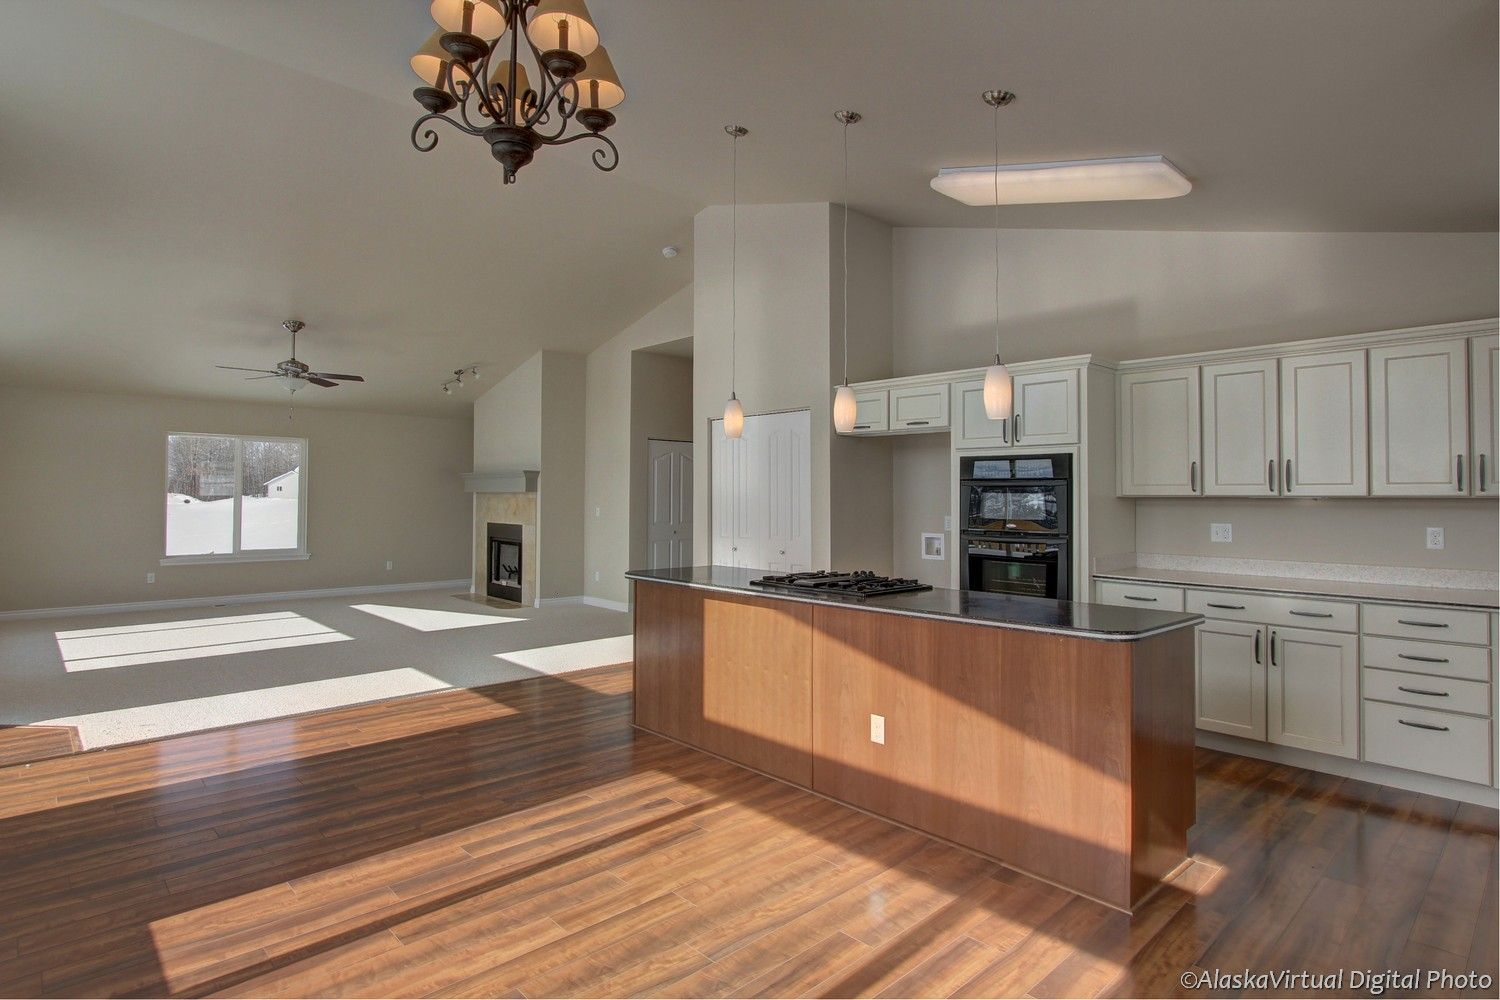 Kitchen featured in the Fairfield 1884 By Spinell Homes in Anchorage, AK